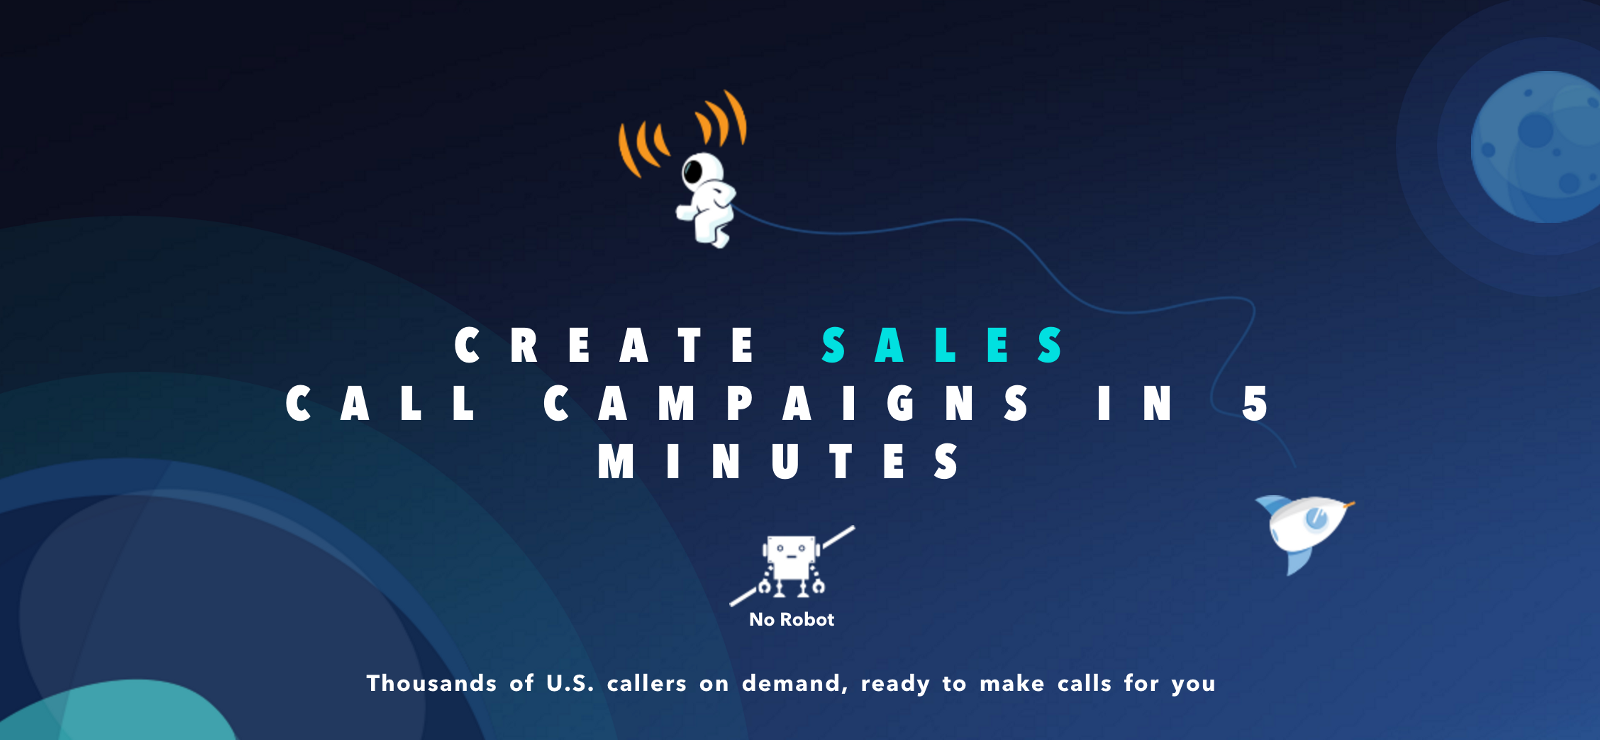 Making Outbound Calls Are Perhaps One Of The Most Time Consuming Marketing Sales Efforts You Could Possibly Engage In With Upcall Now It Doesnt Have To